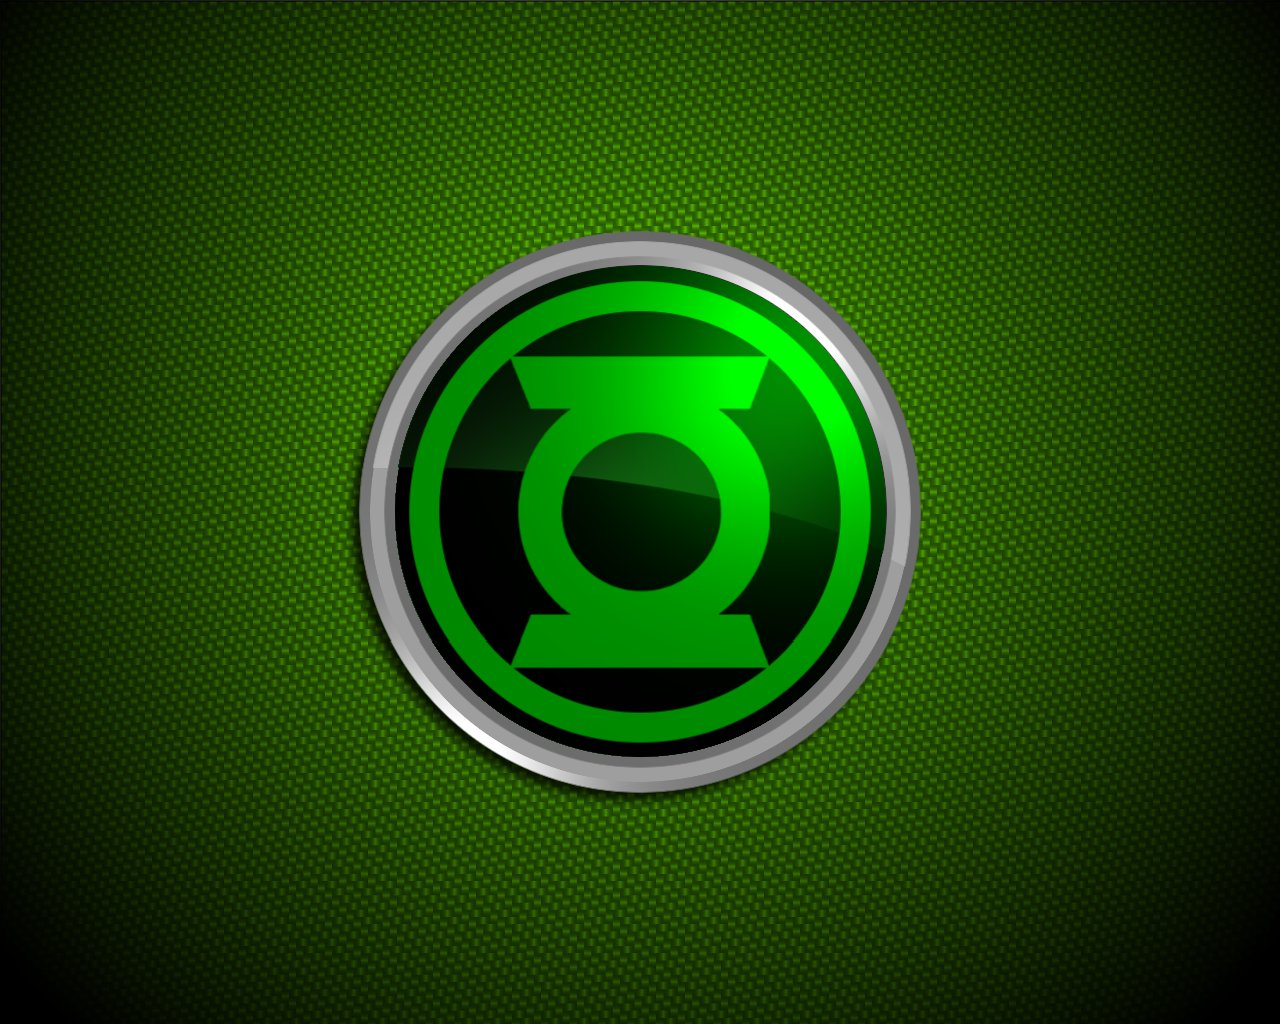 green lantern wallpaper hd 1280x1024